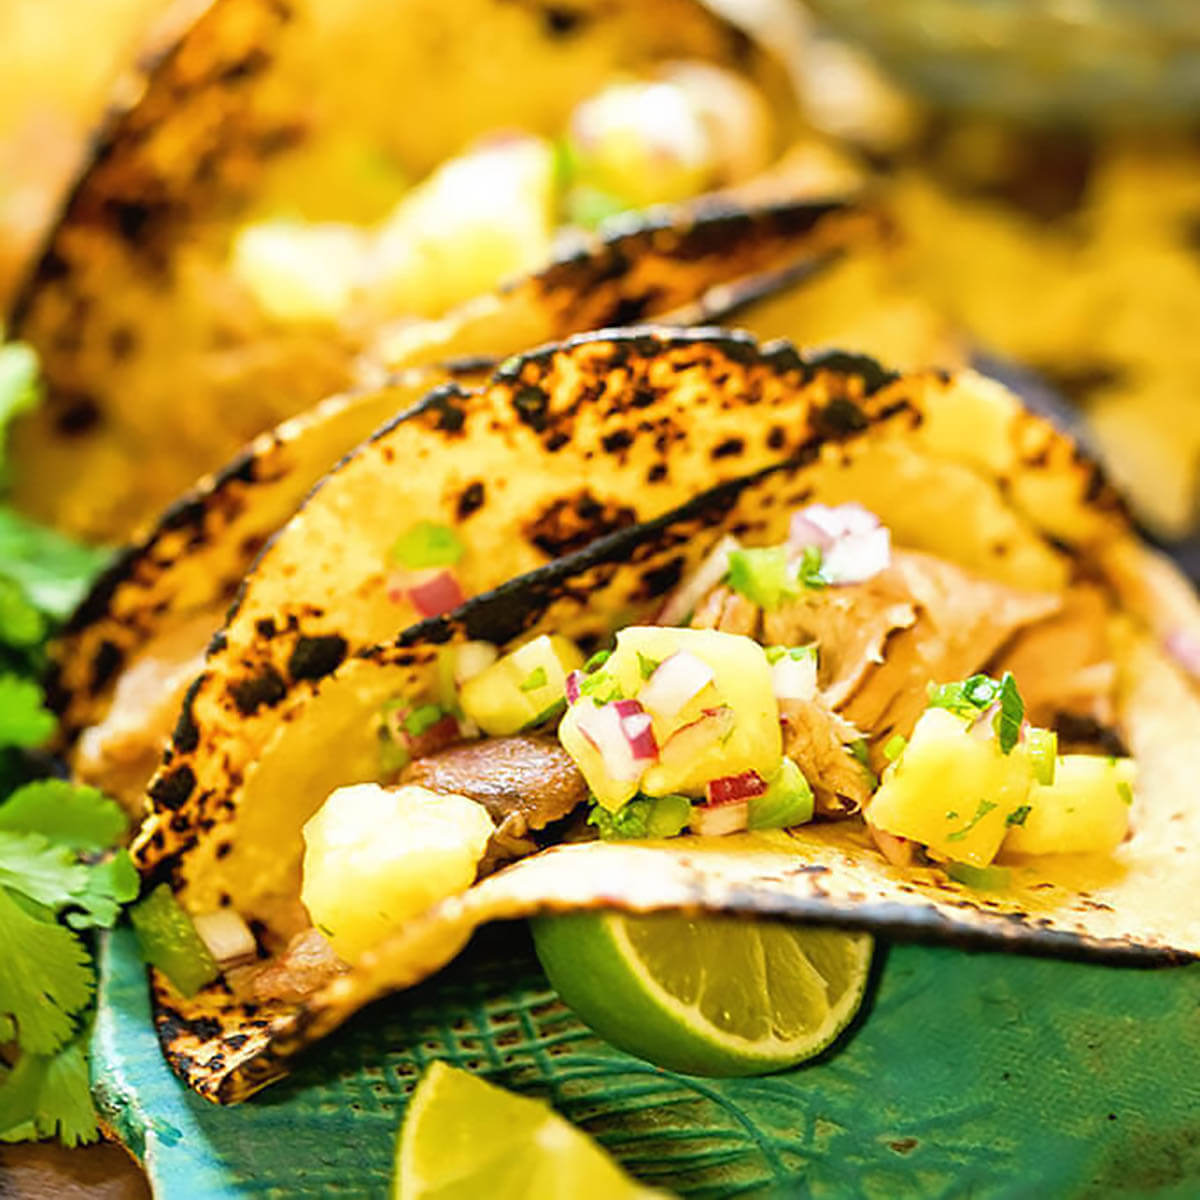 Pork tacos topped with pineapple salsa.